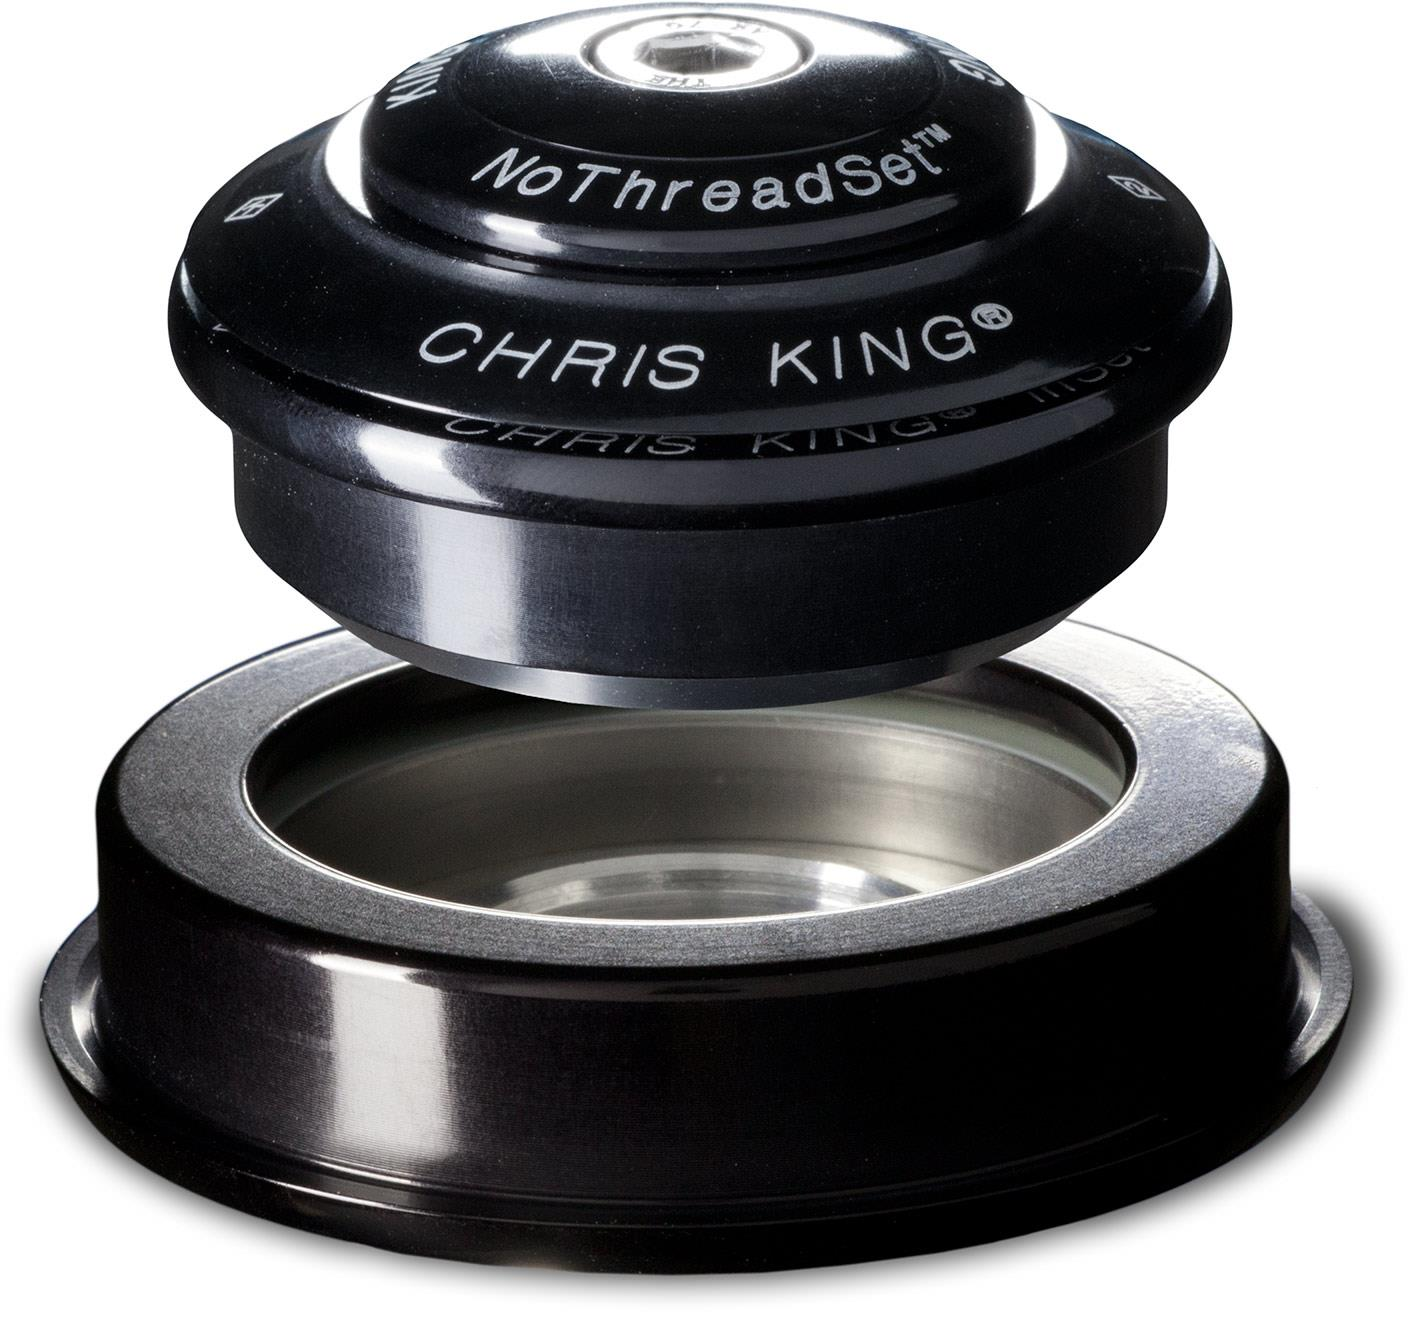 Chris King Inset 2 Headset - Tapered